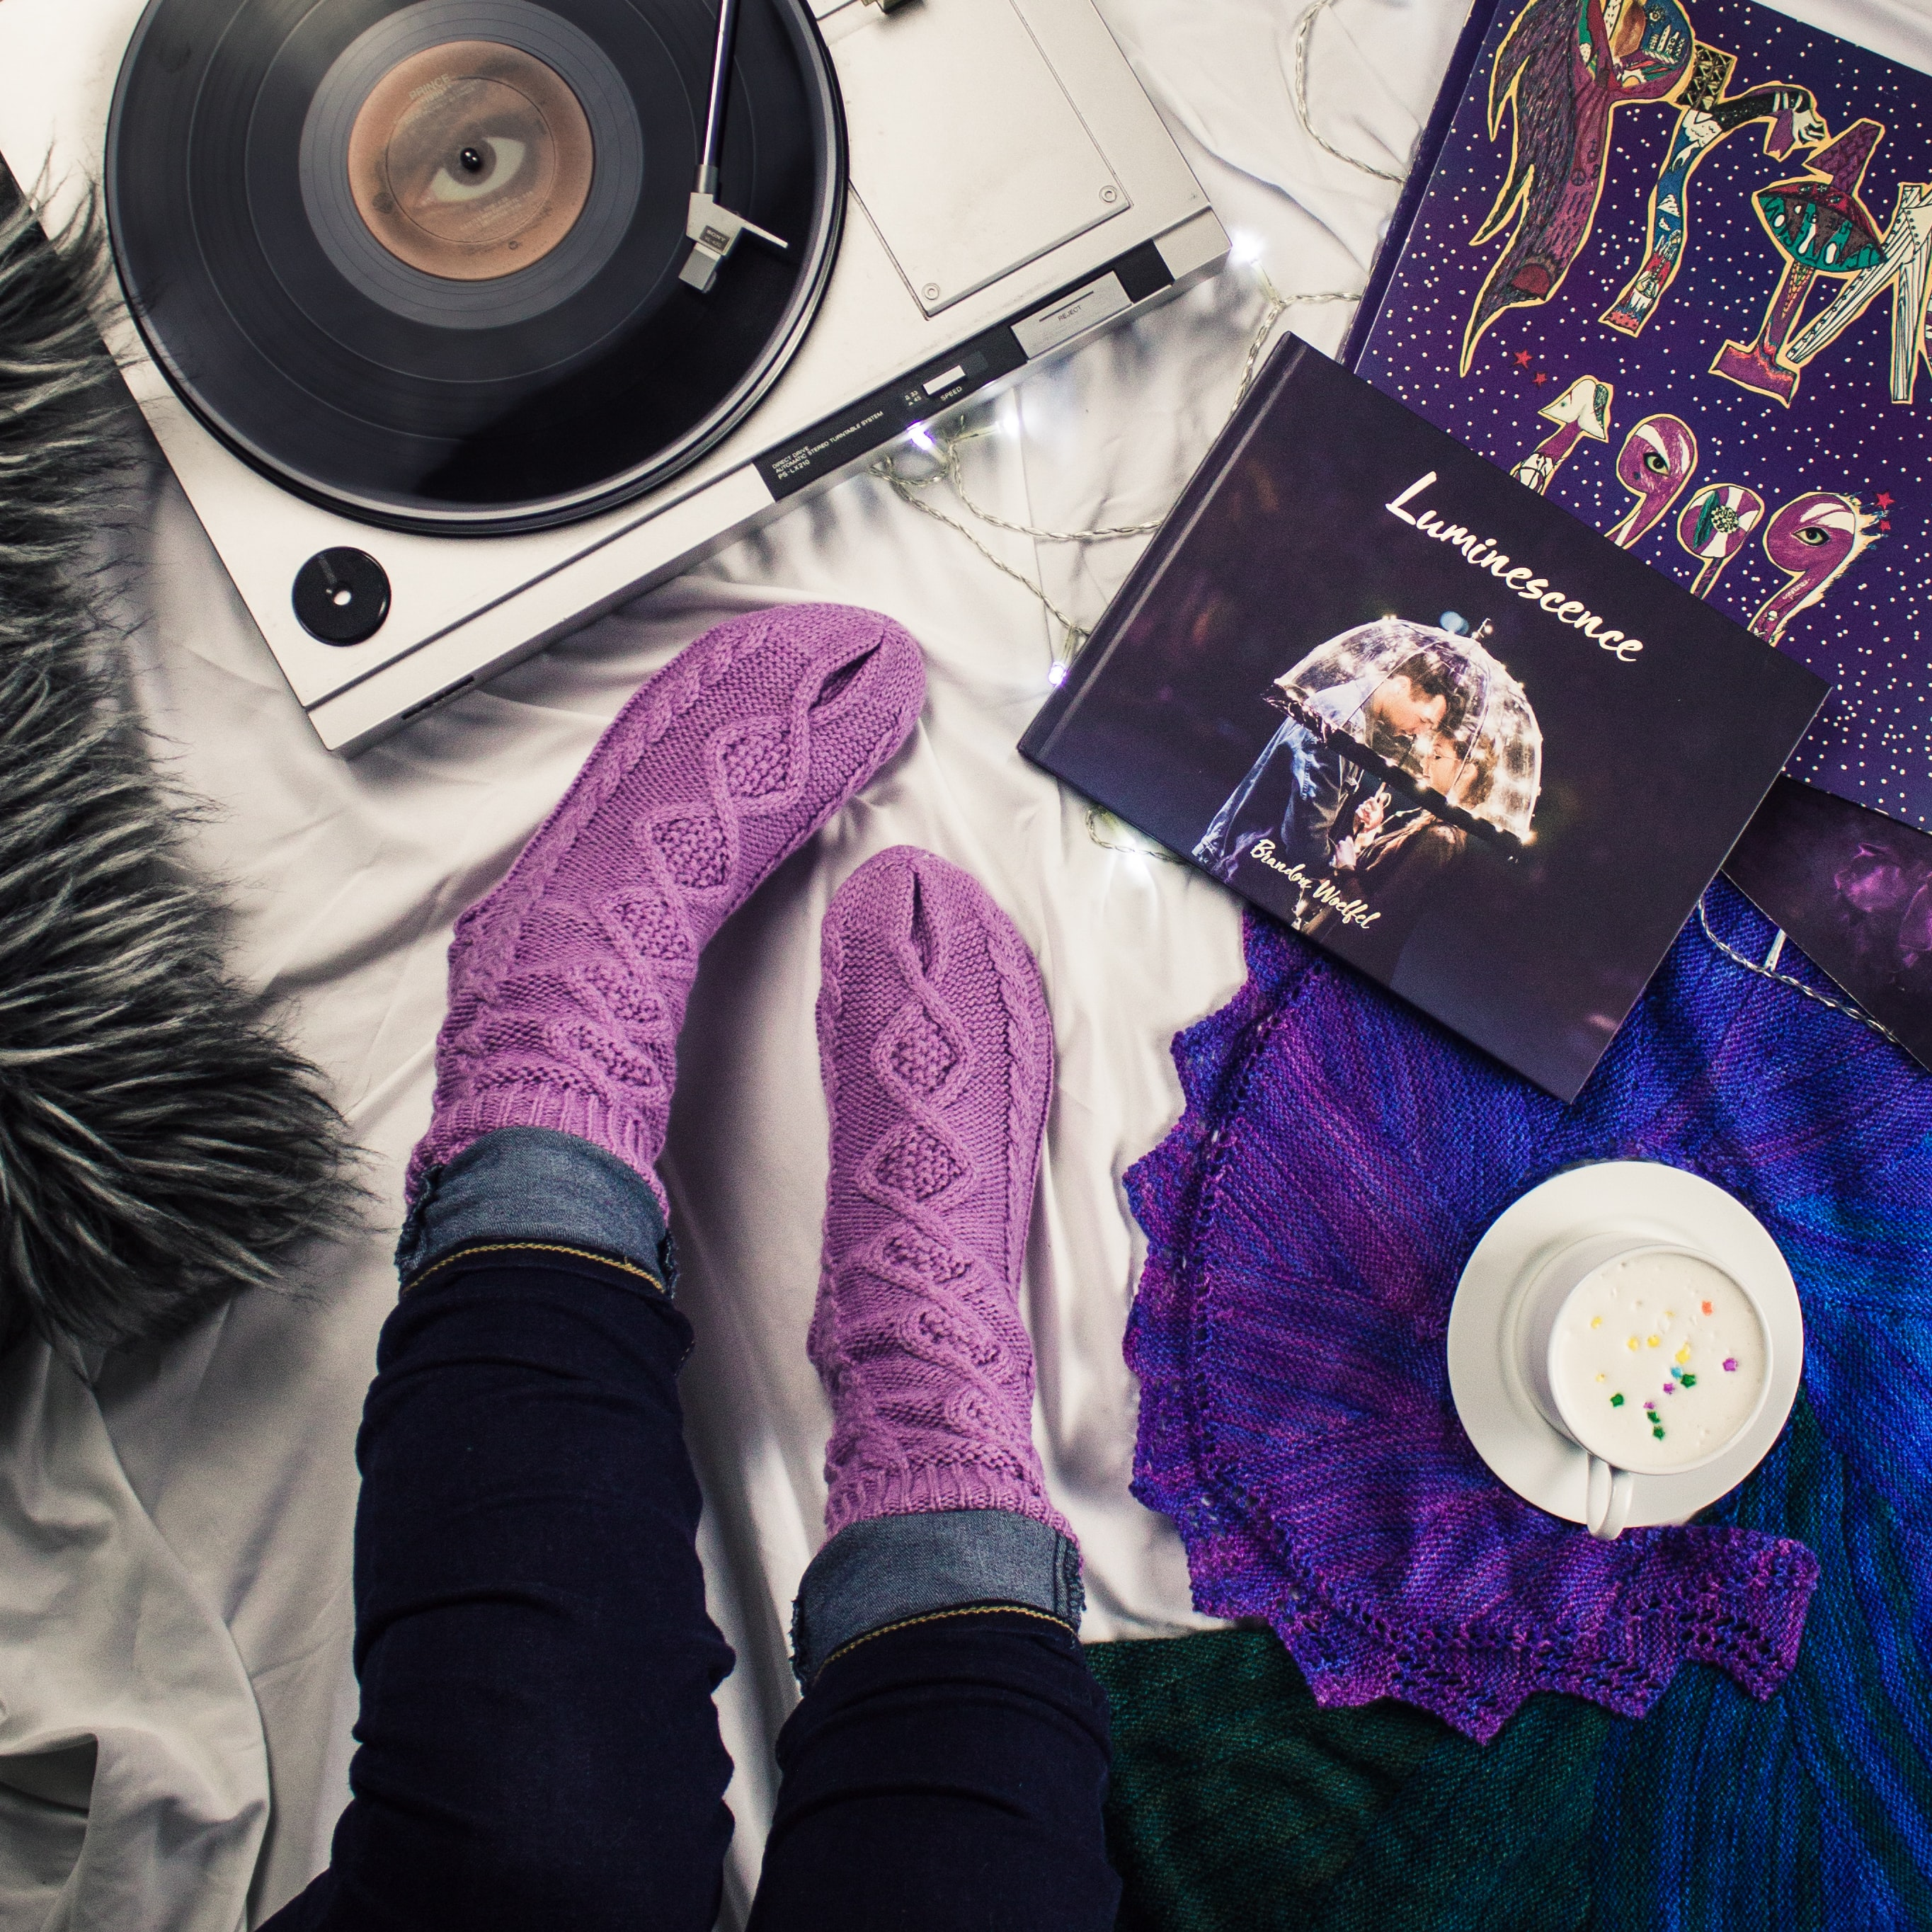 woman's purple socks near turntable